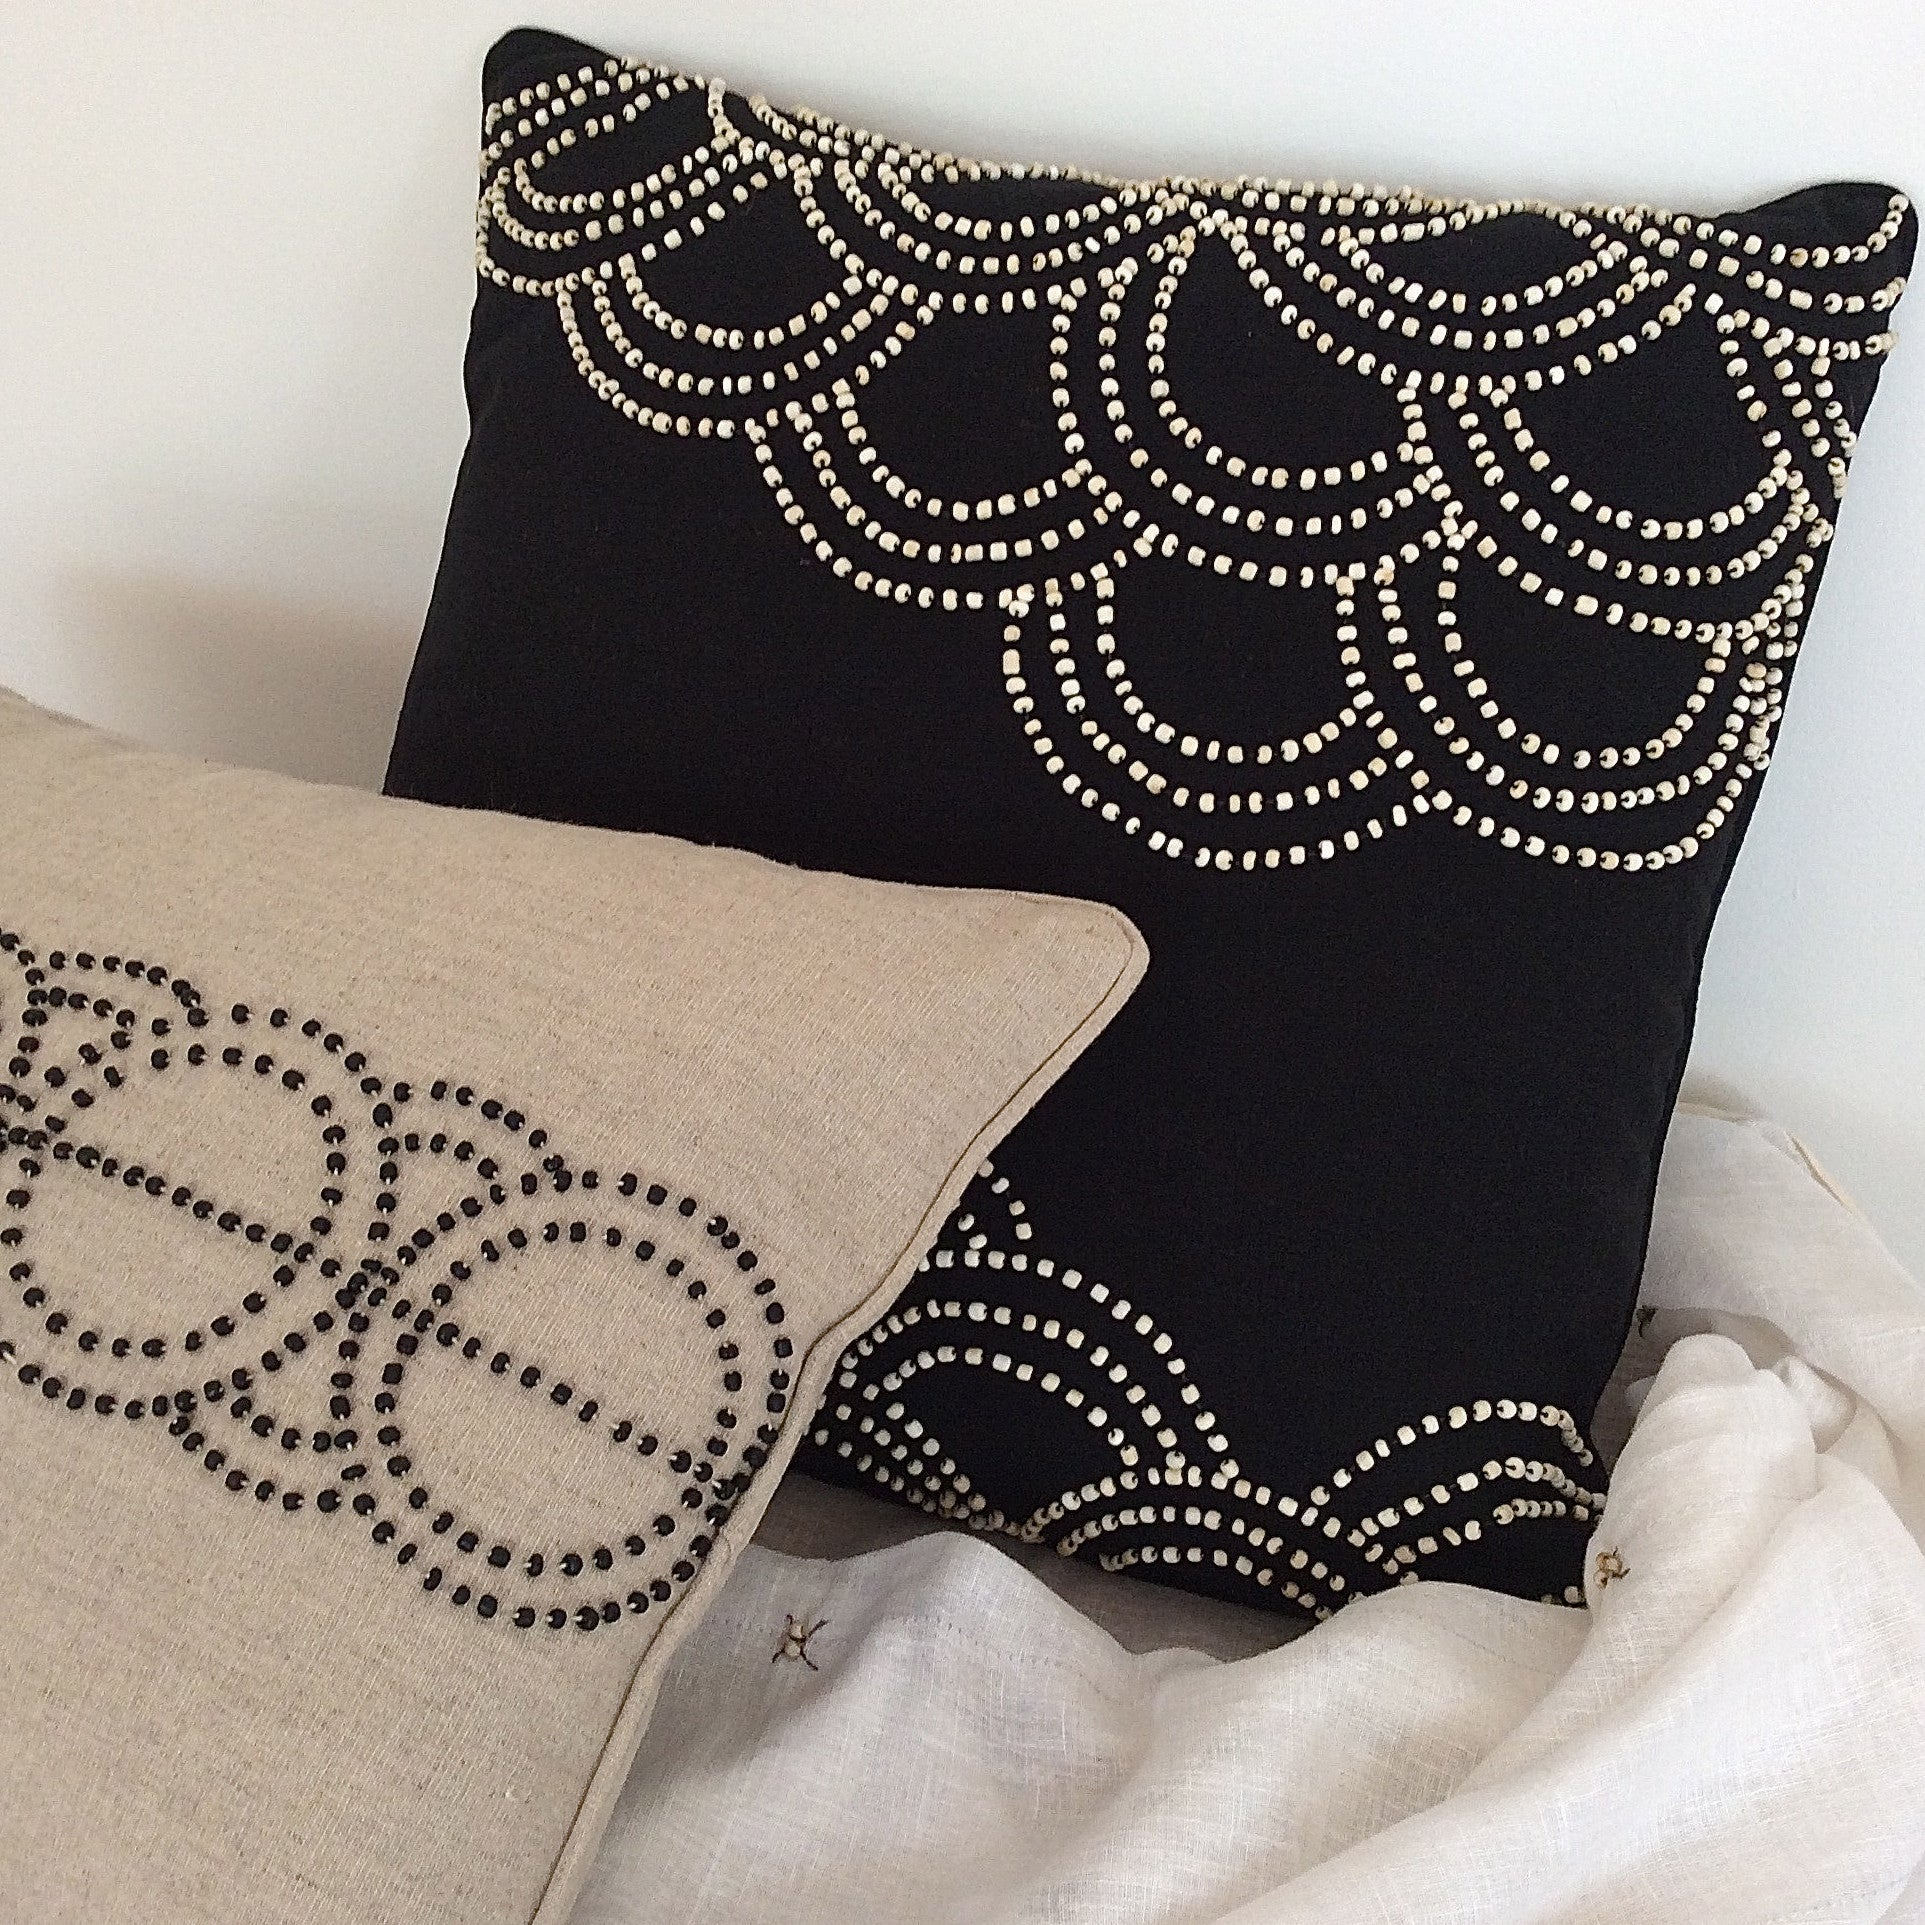 'tide natural on black' cushion